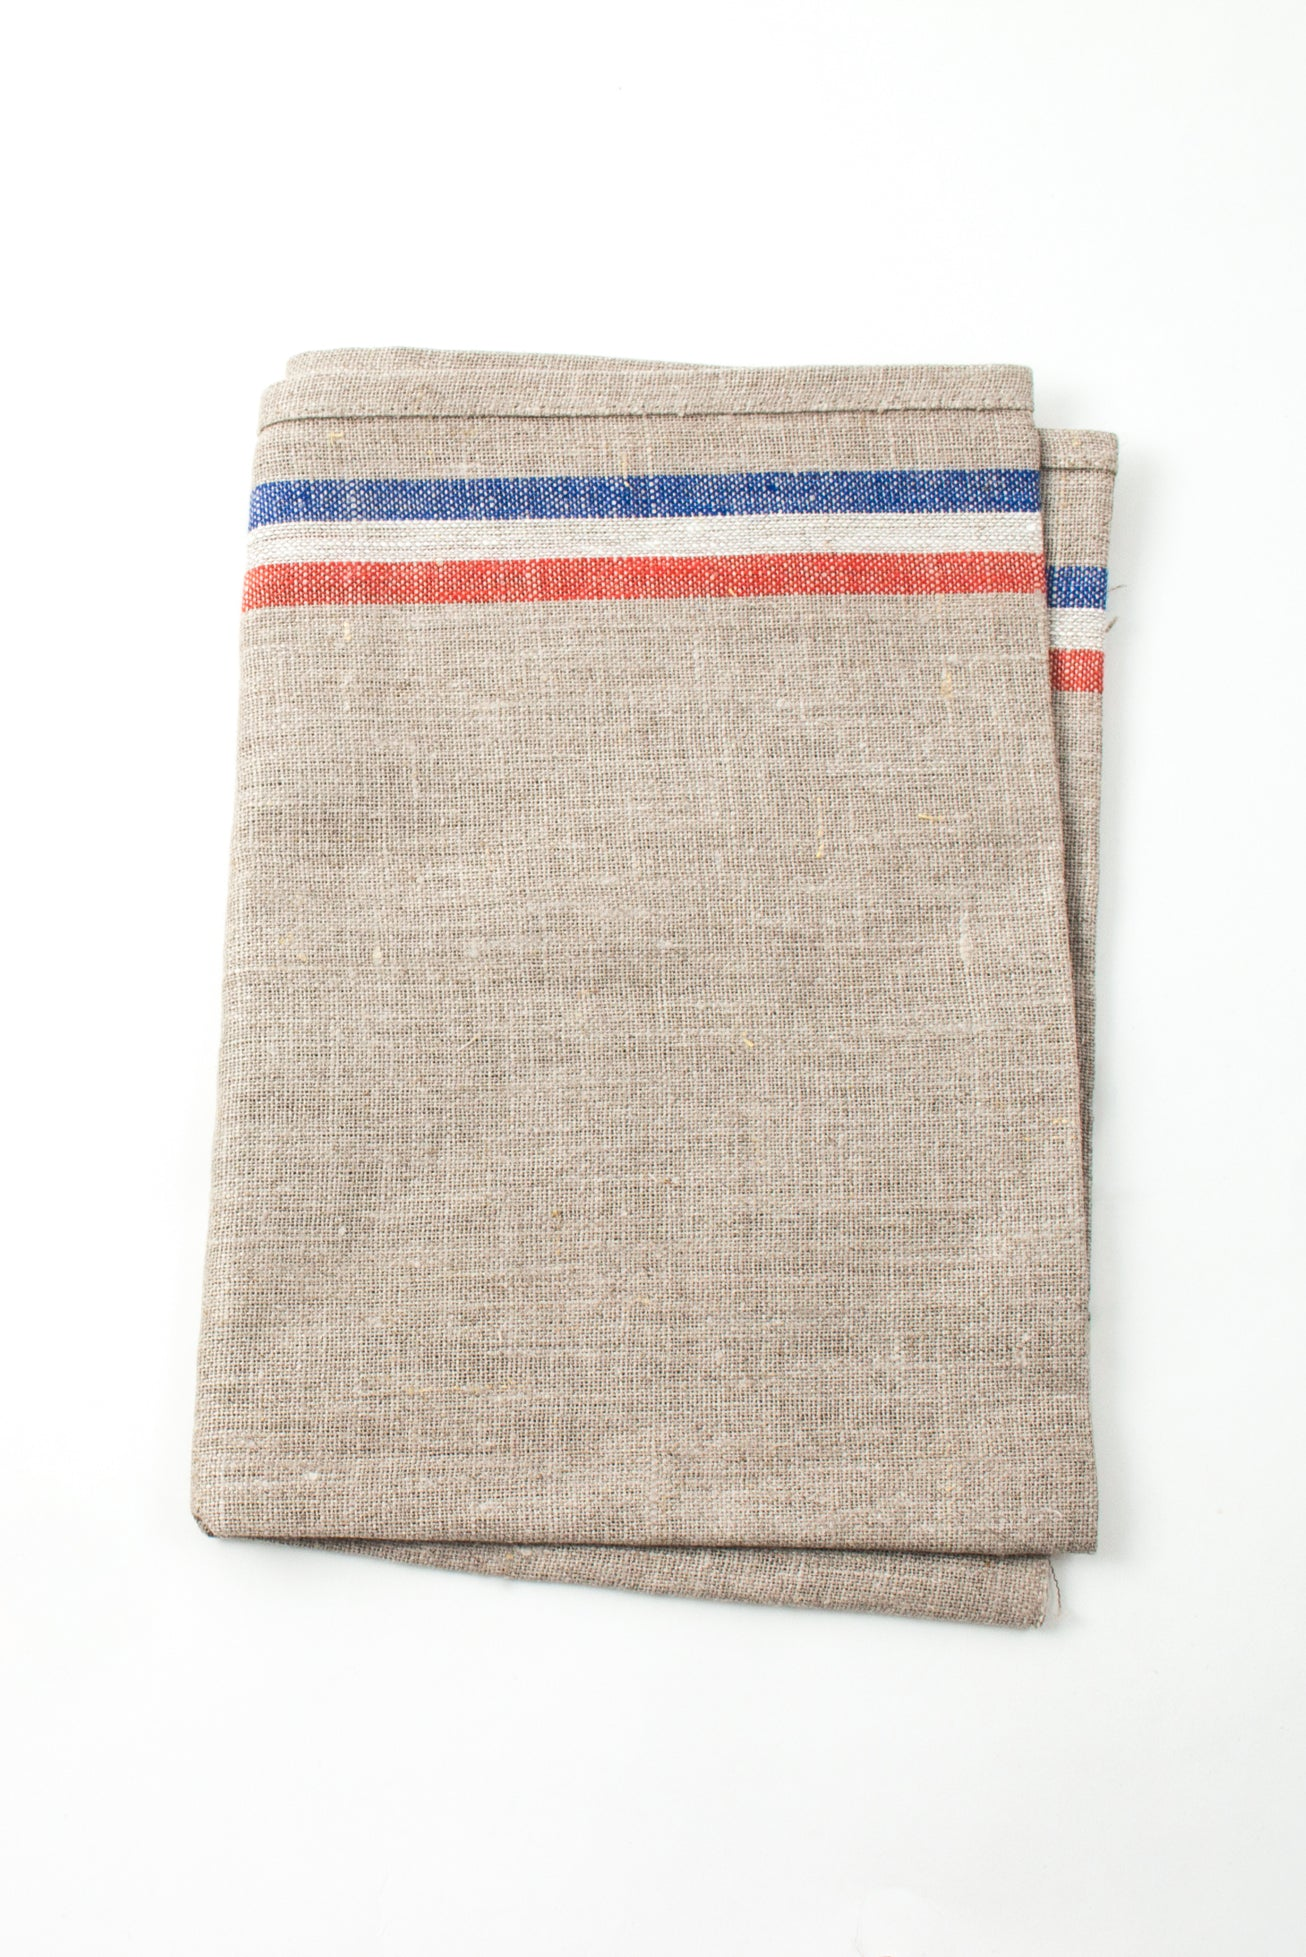 "Thieffry Set of 2 French Flag Dish Towels (22"" x 32"")"